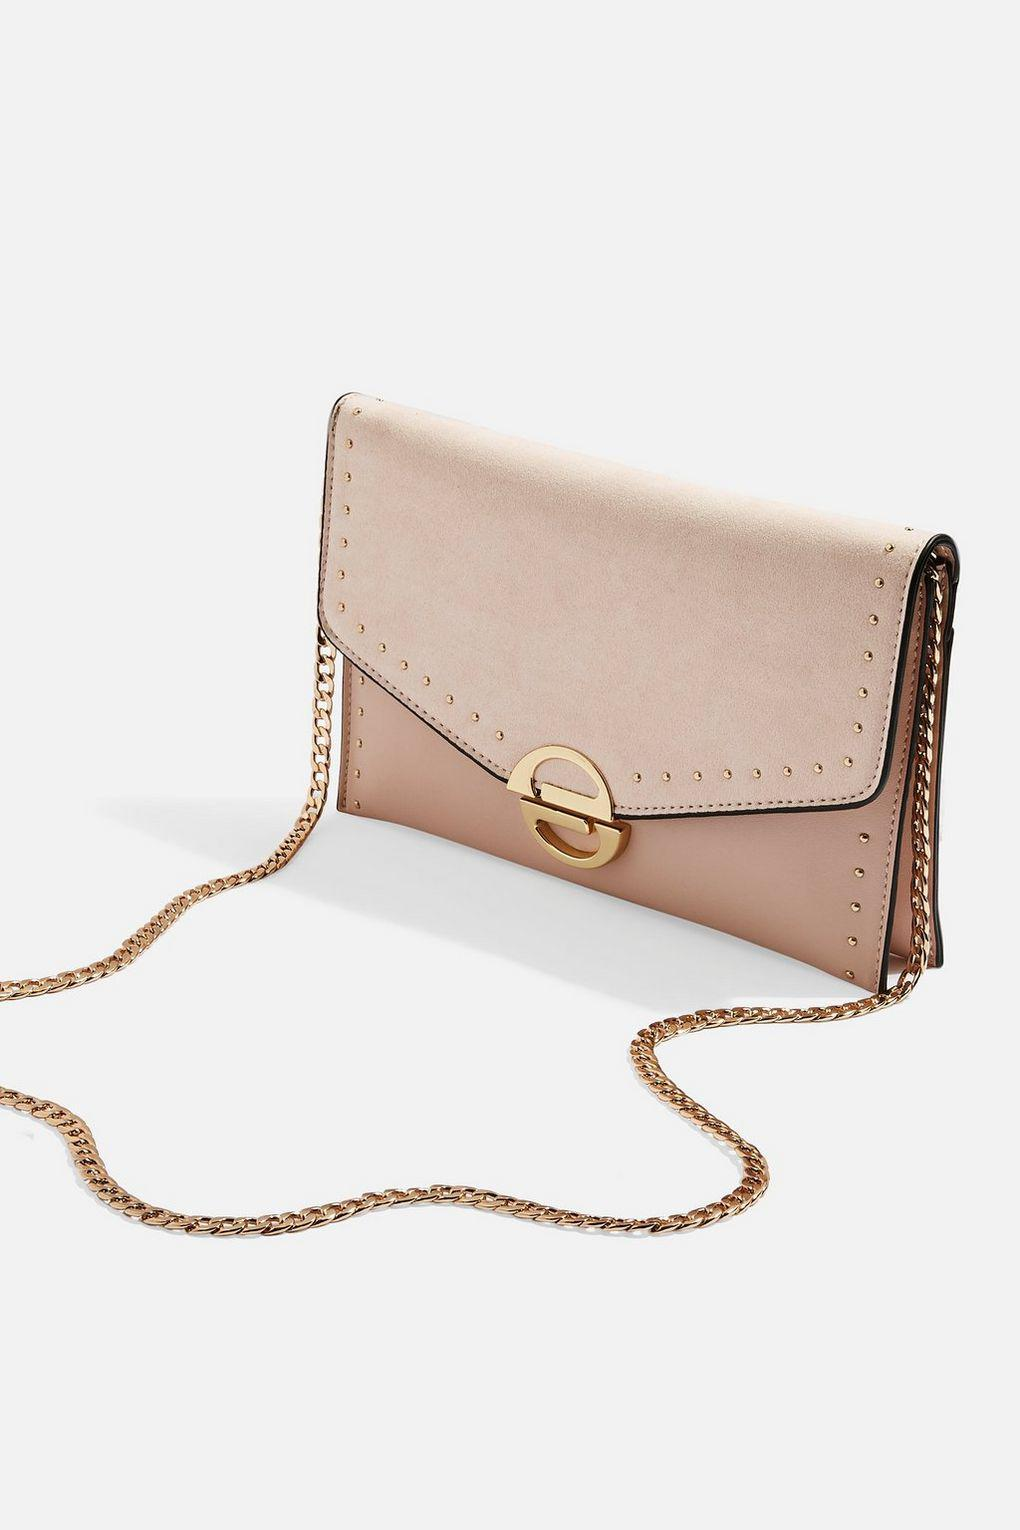 Lyst - TOPSHOP Nude Candice Stud Clutch Bag in Natural c7241373ae370